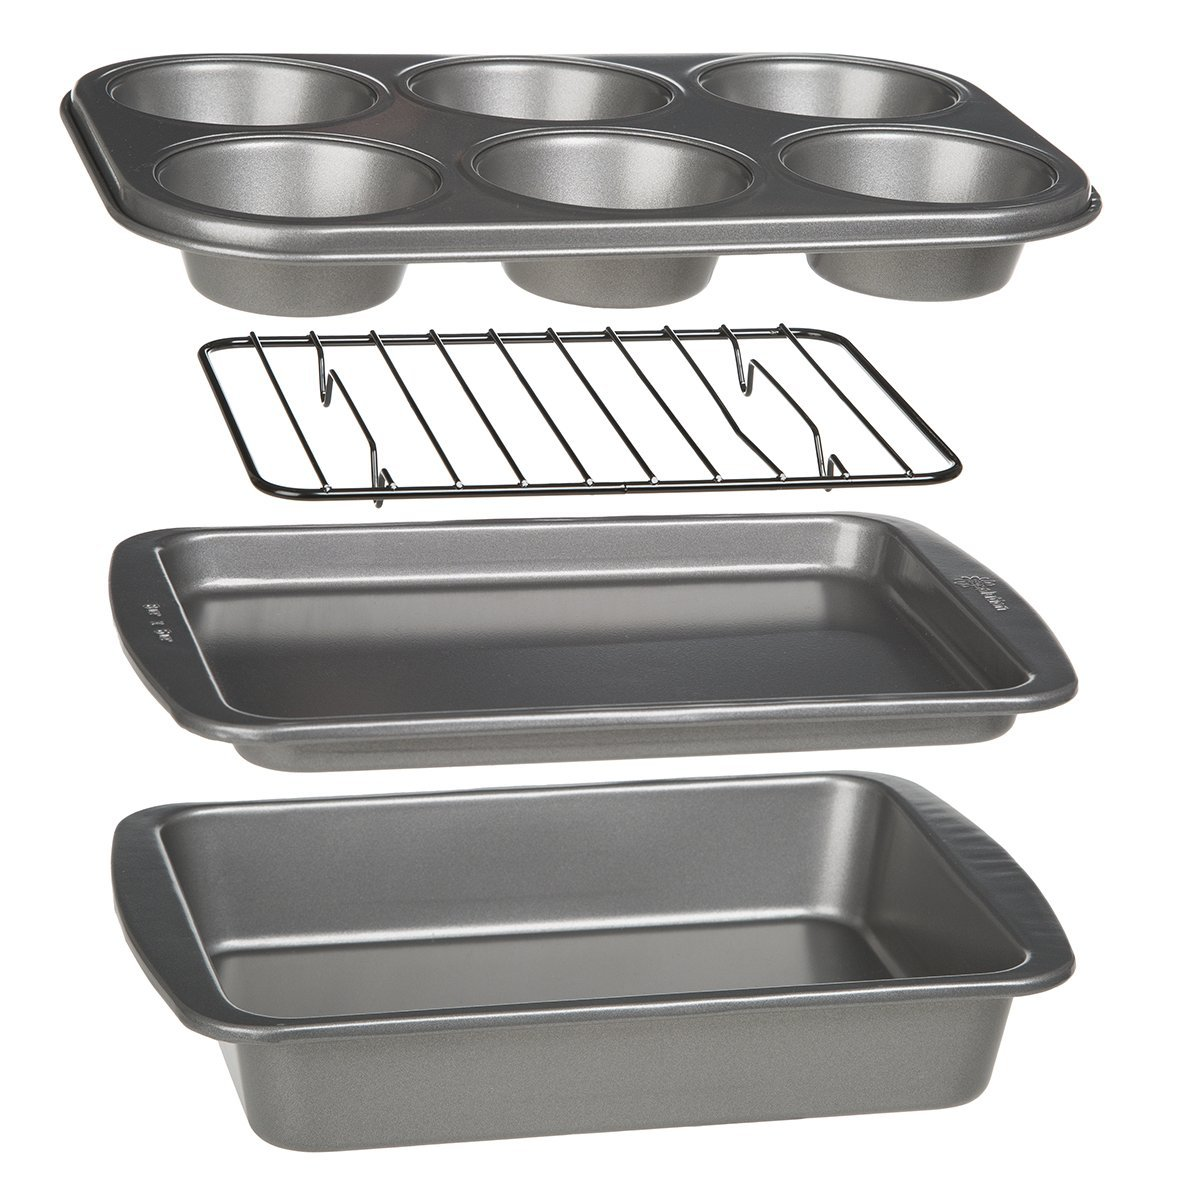 Ecolution EIOGY-1204 toaster bakeware, Gray by Ecolution